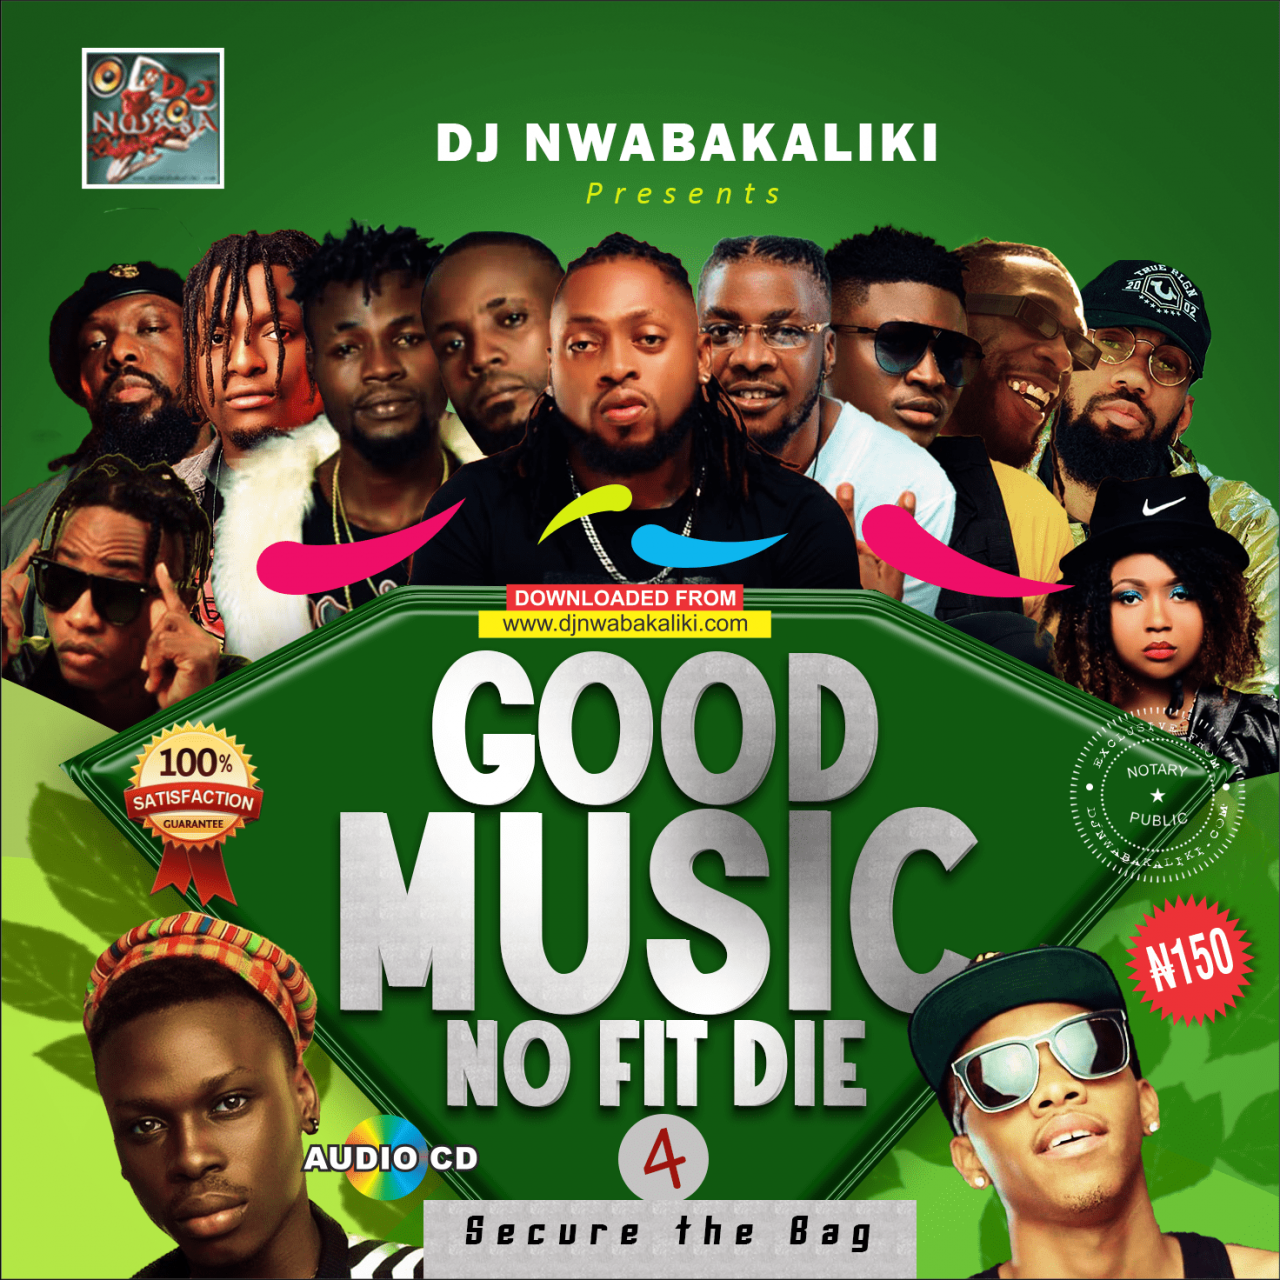 latest-dj-nwabakaliki-–-new-good-music-no-fit-die-mixtape